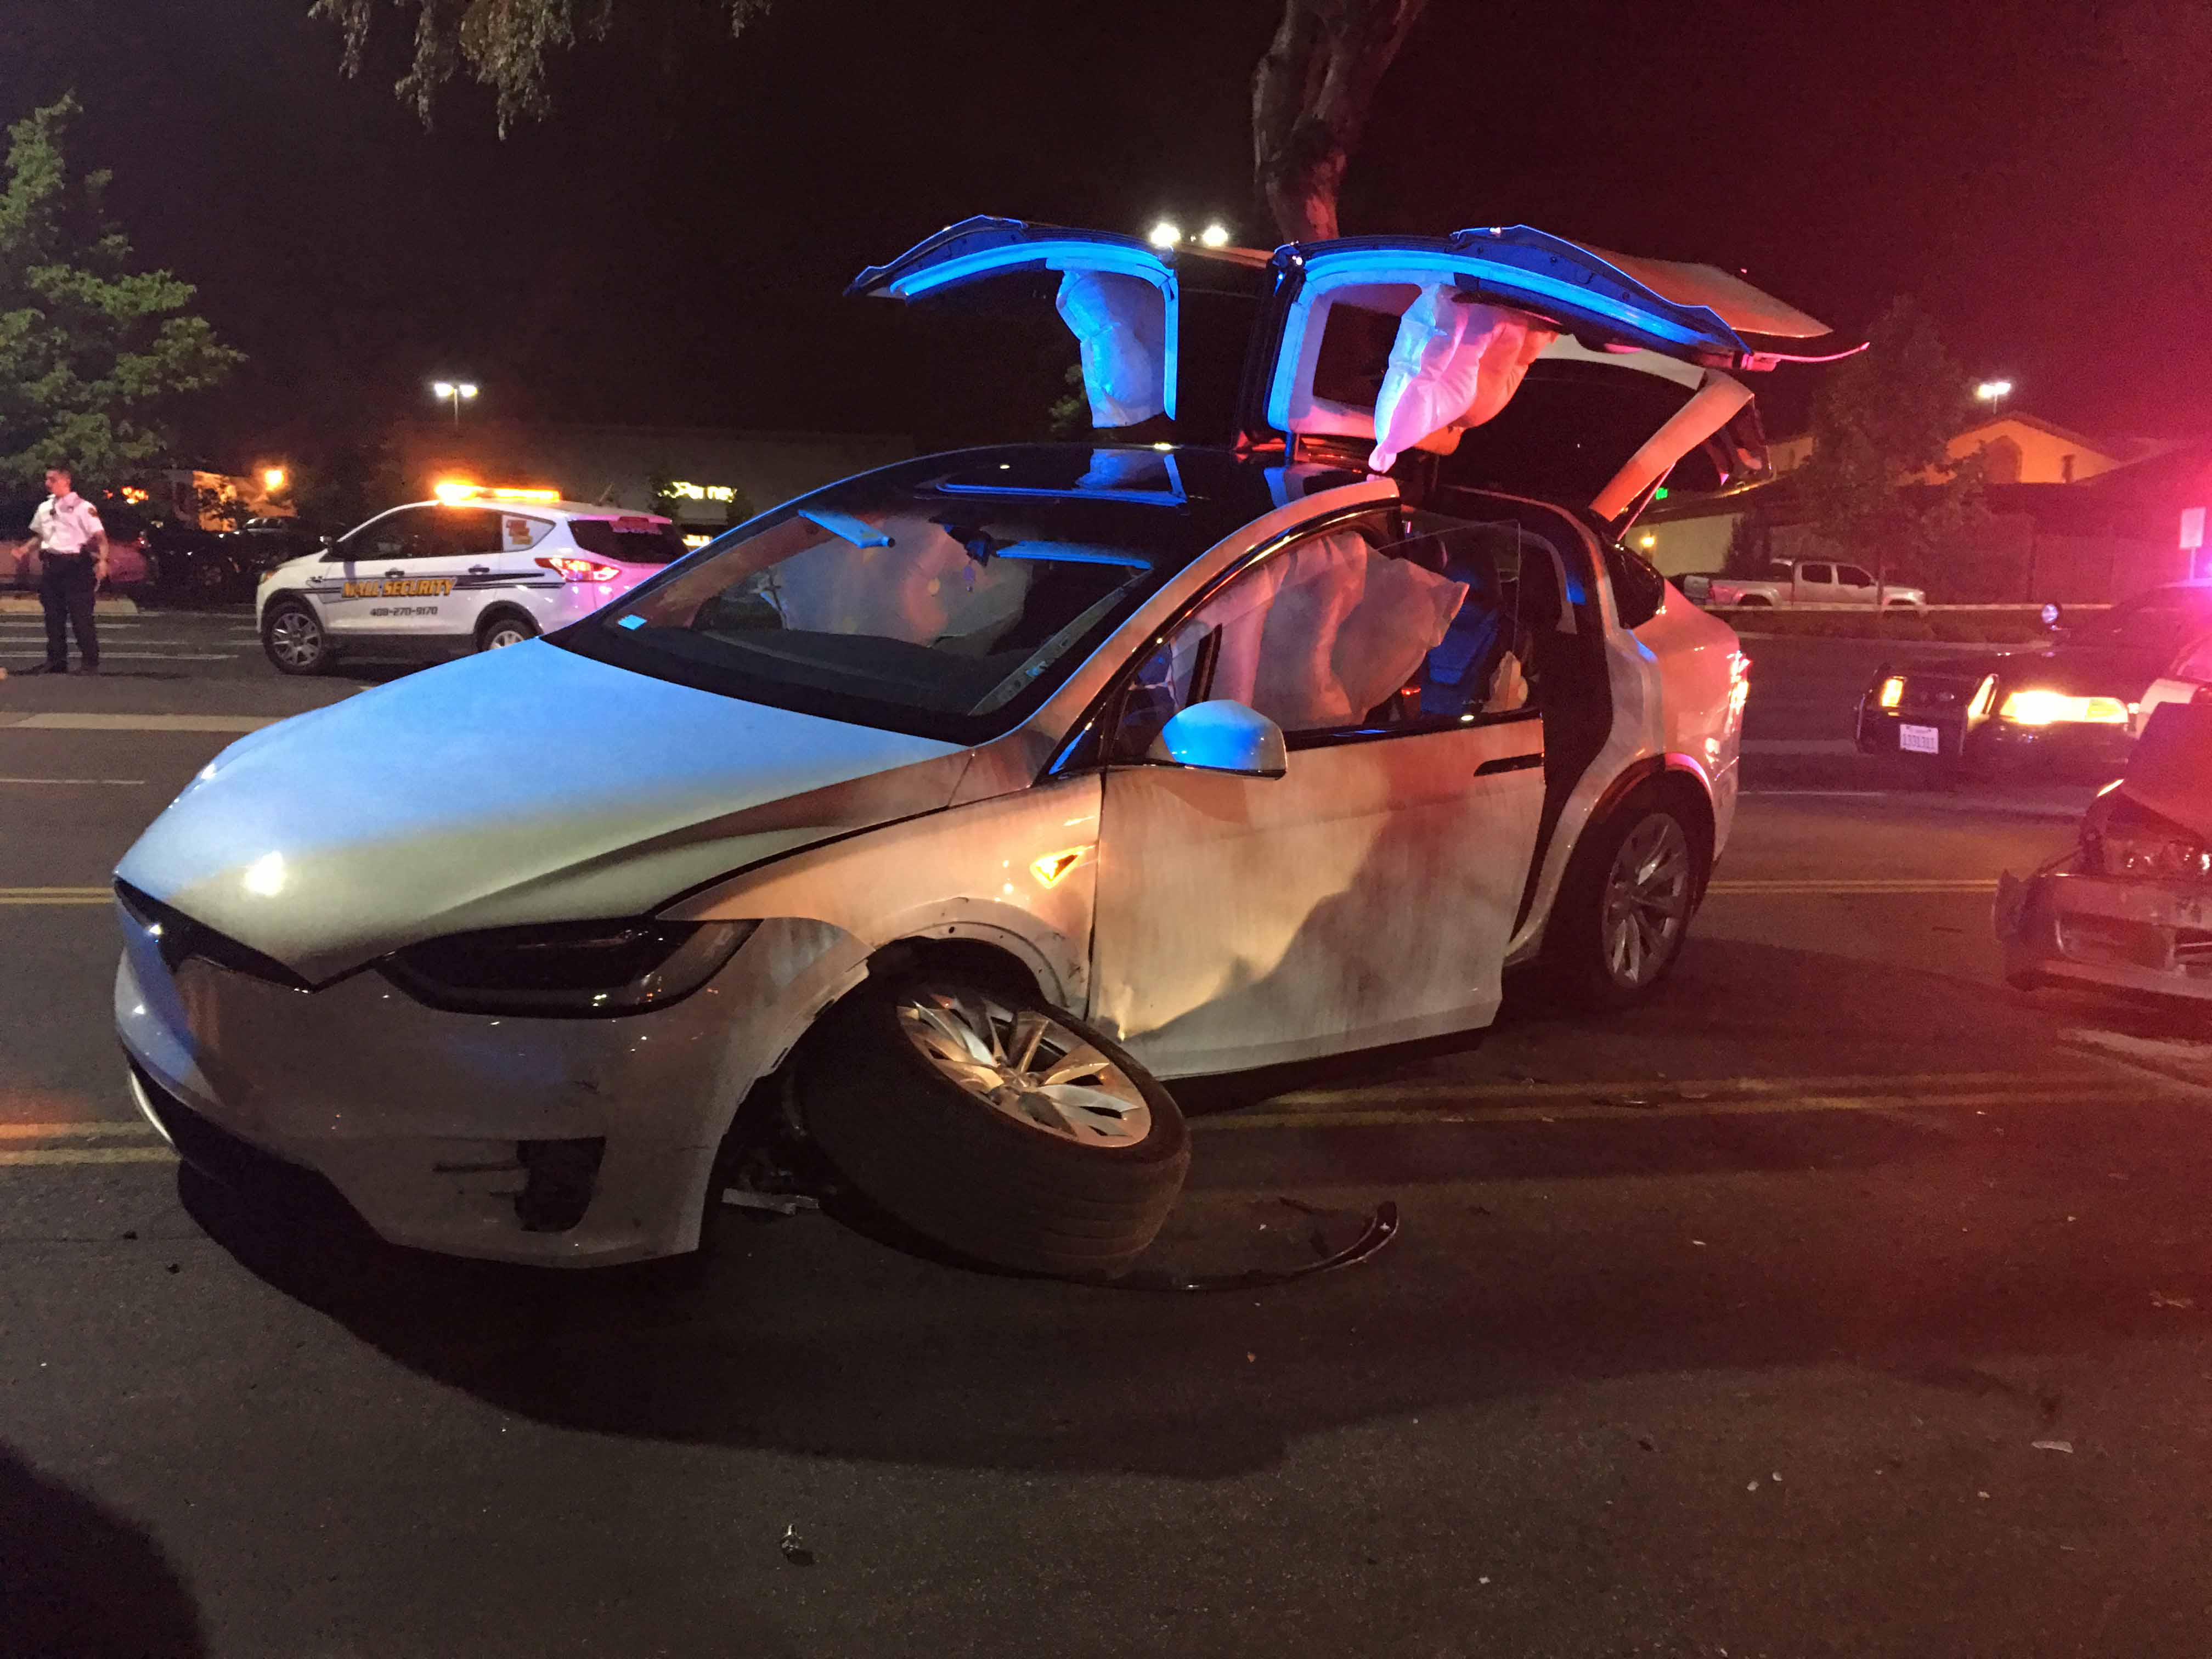 Car Battery Life >> Tesla Model X safety-first approach saves groom's life after hit and run the night before his ...